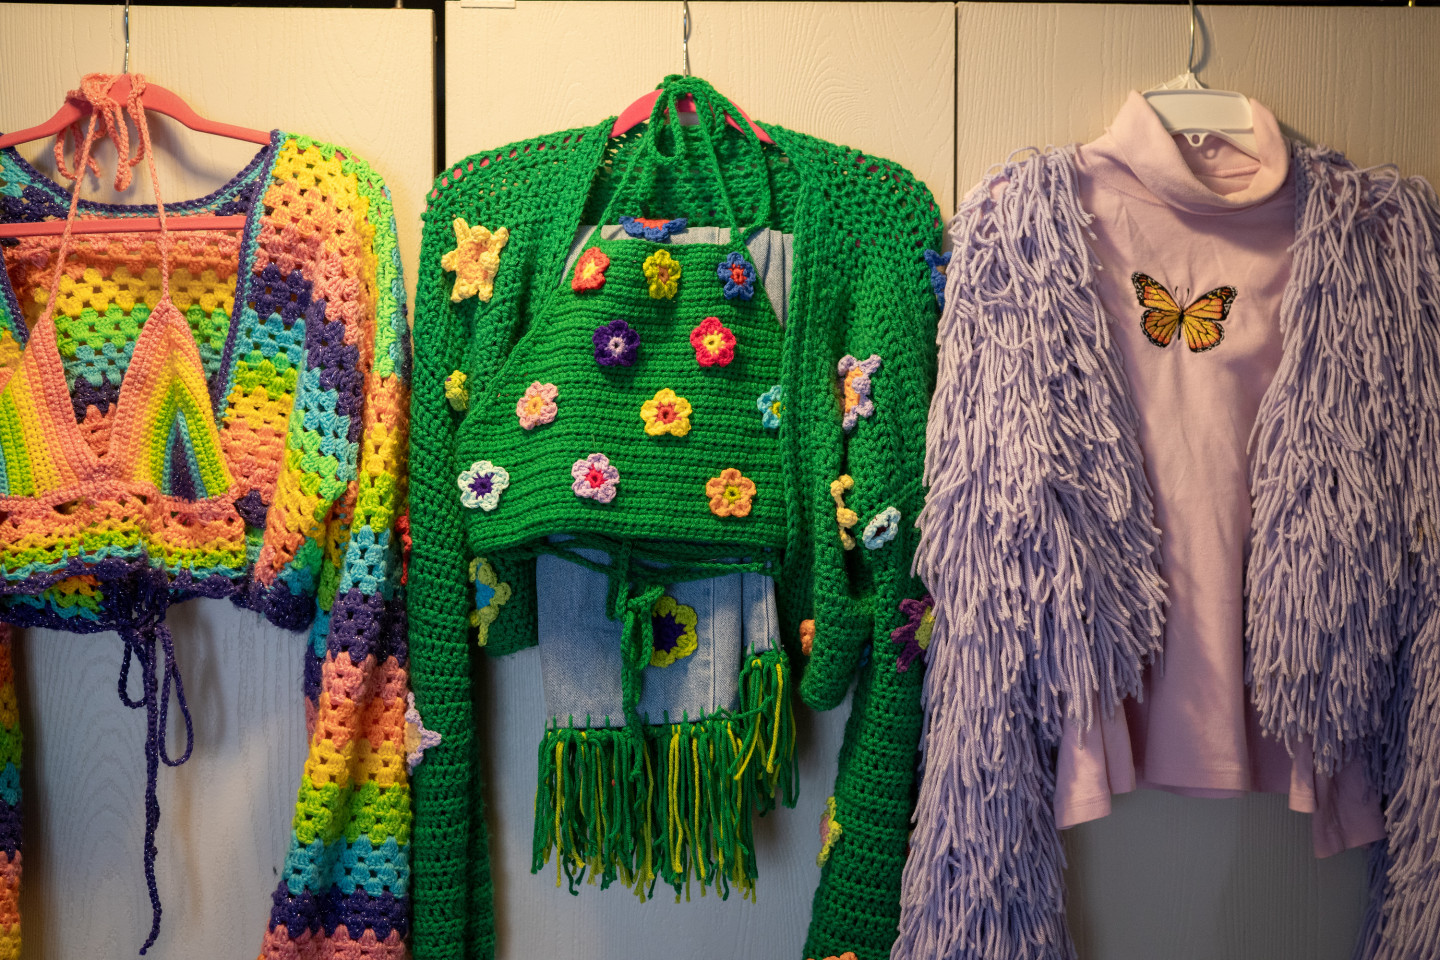 Several crocheted outfits on hangers.